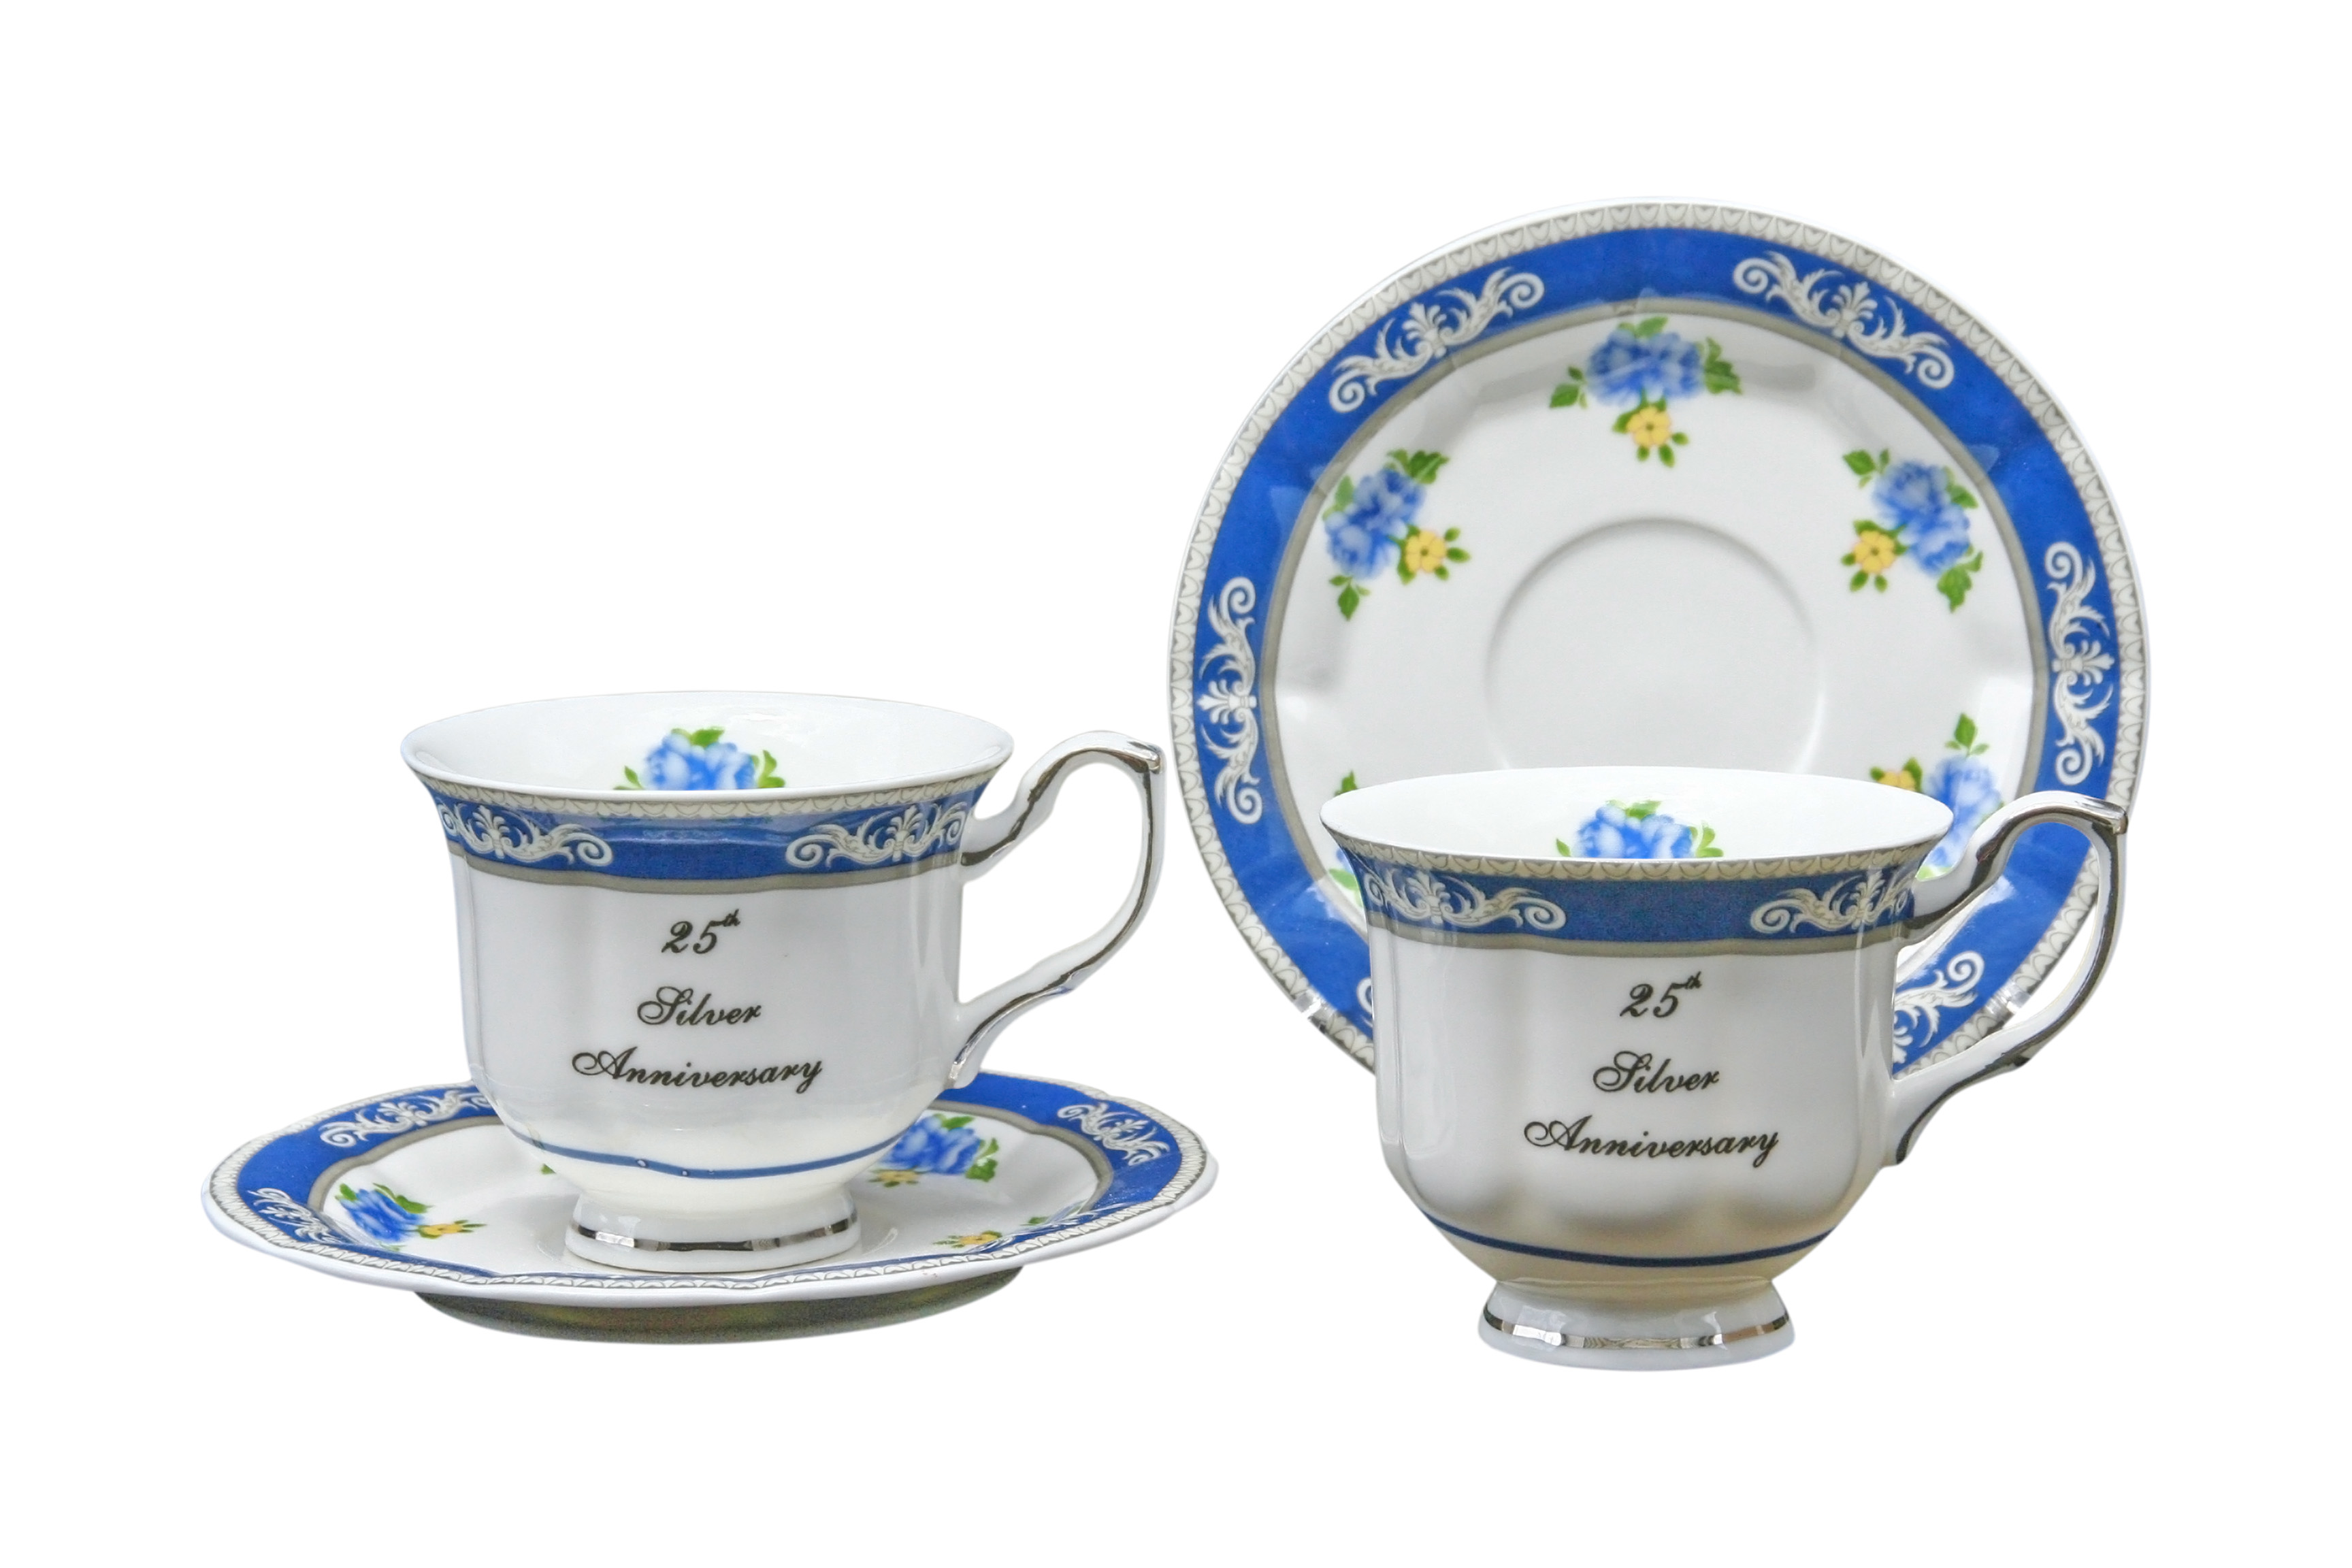 25th Anniversary 2cup and saucer set